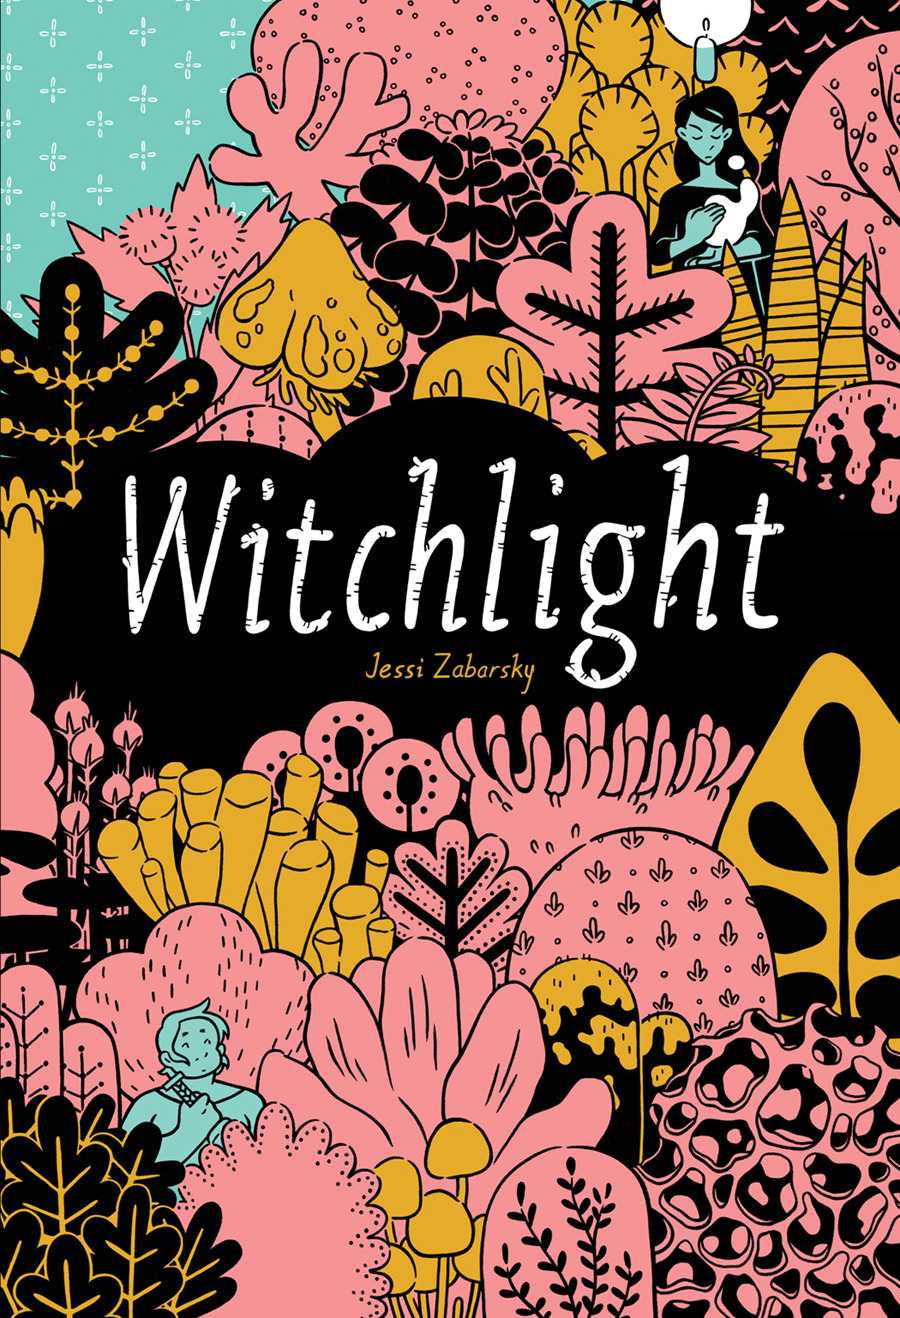 Image result for witchlight by jessi zabarsky